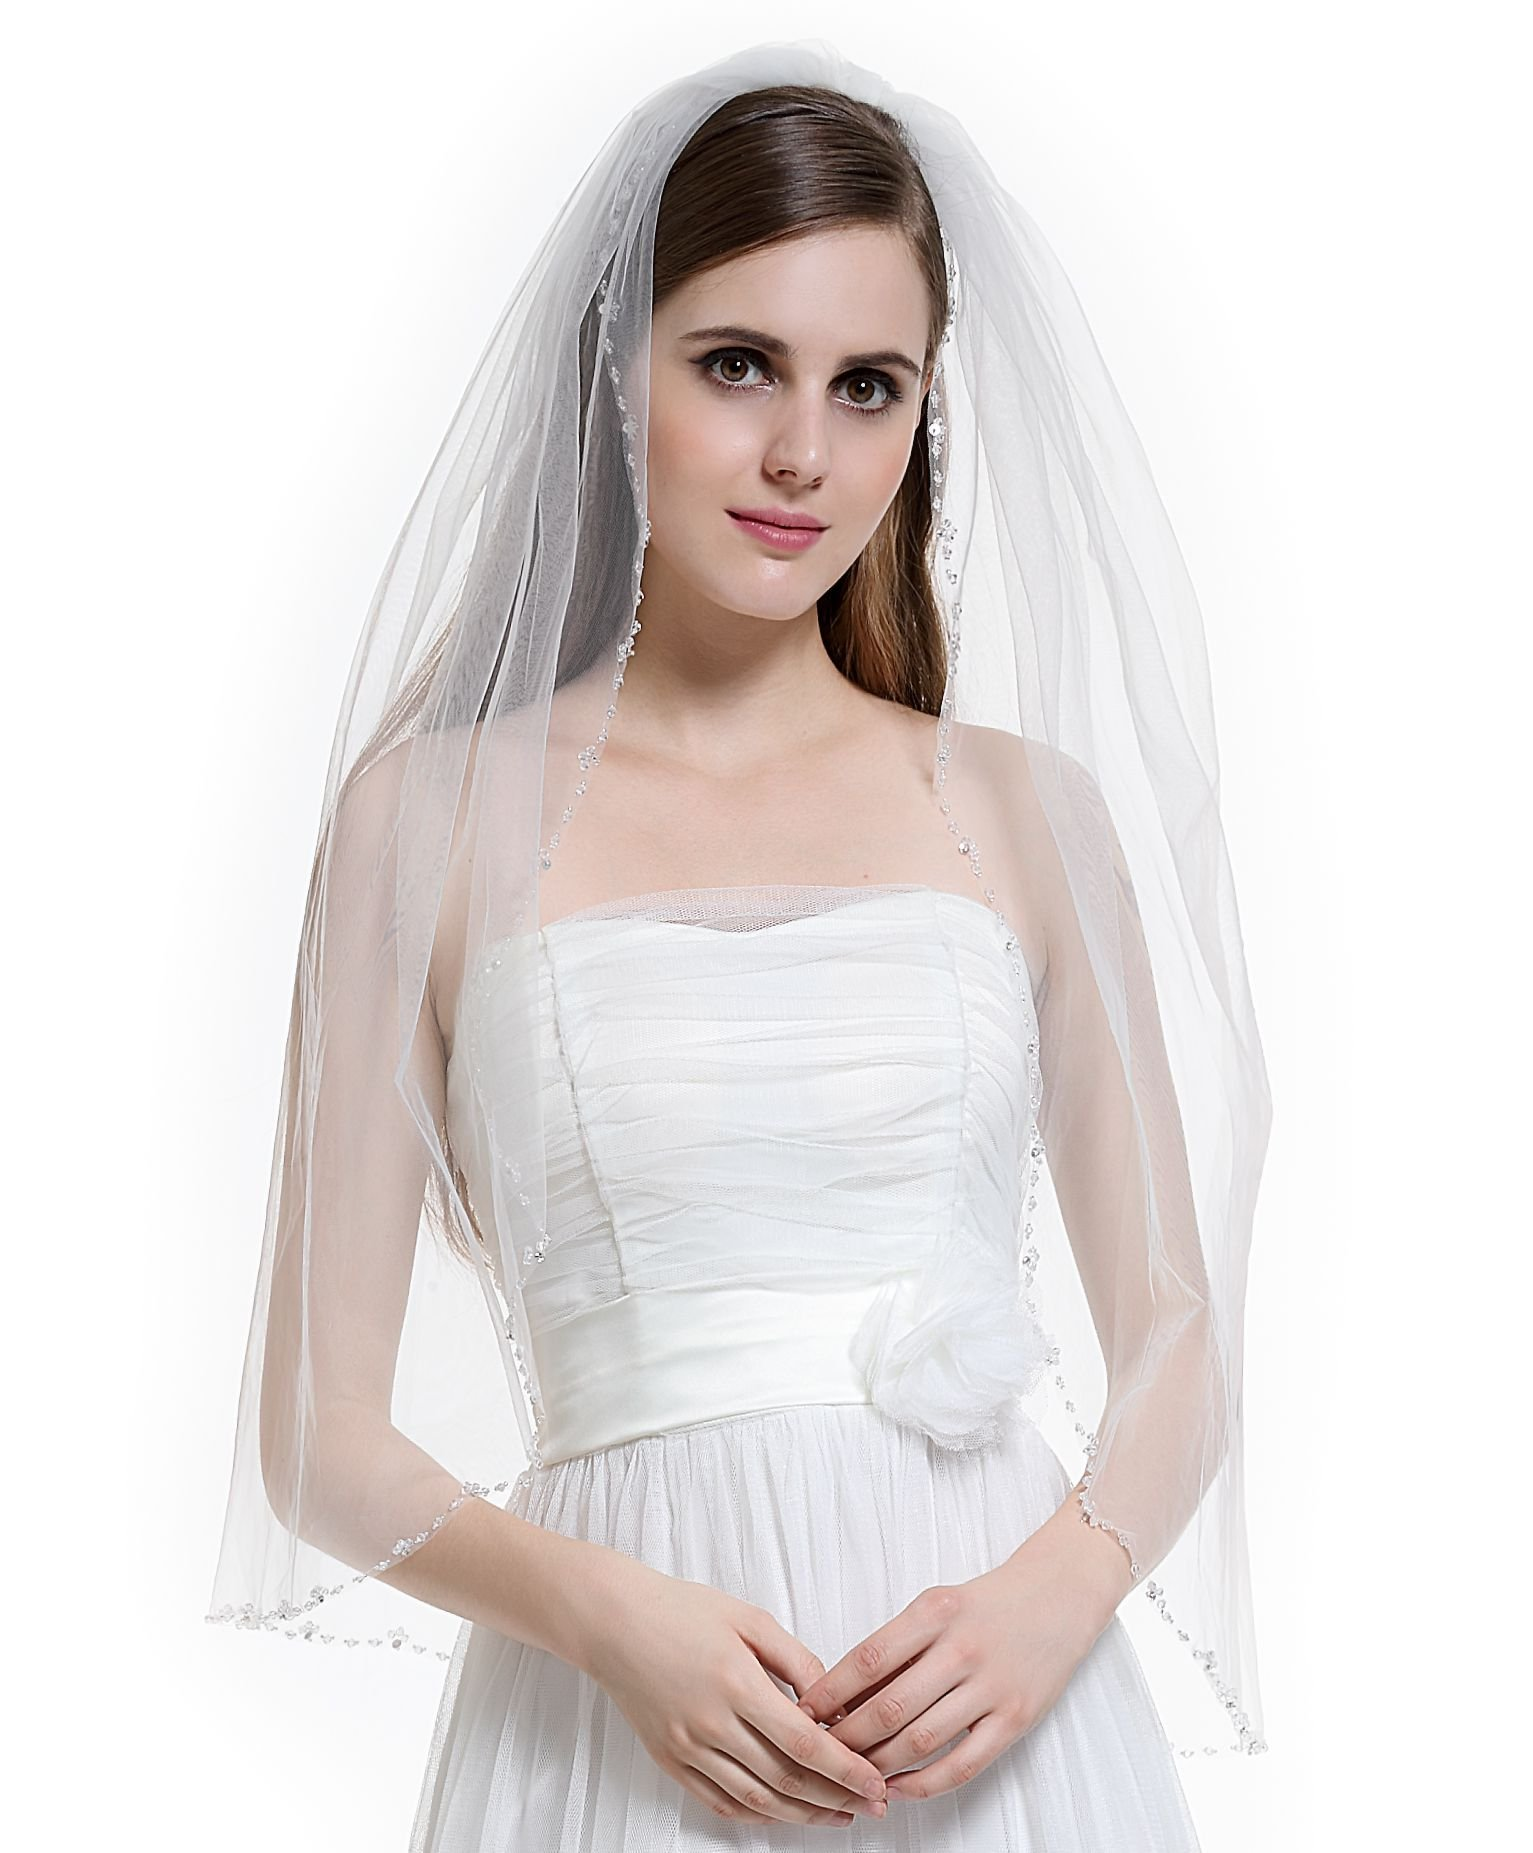 1T Bridal Wedding Veil with Comb Crystals Beaded Edge-V57(White) by BEAUTELICATE